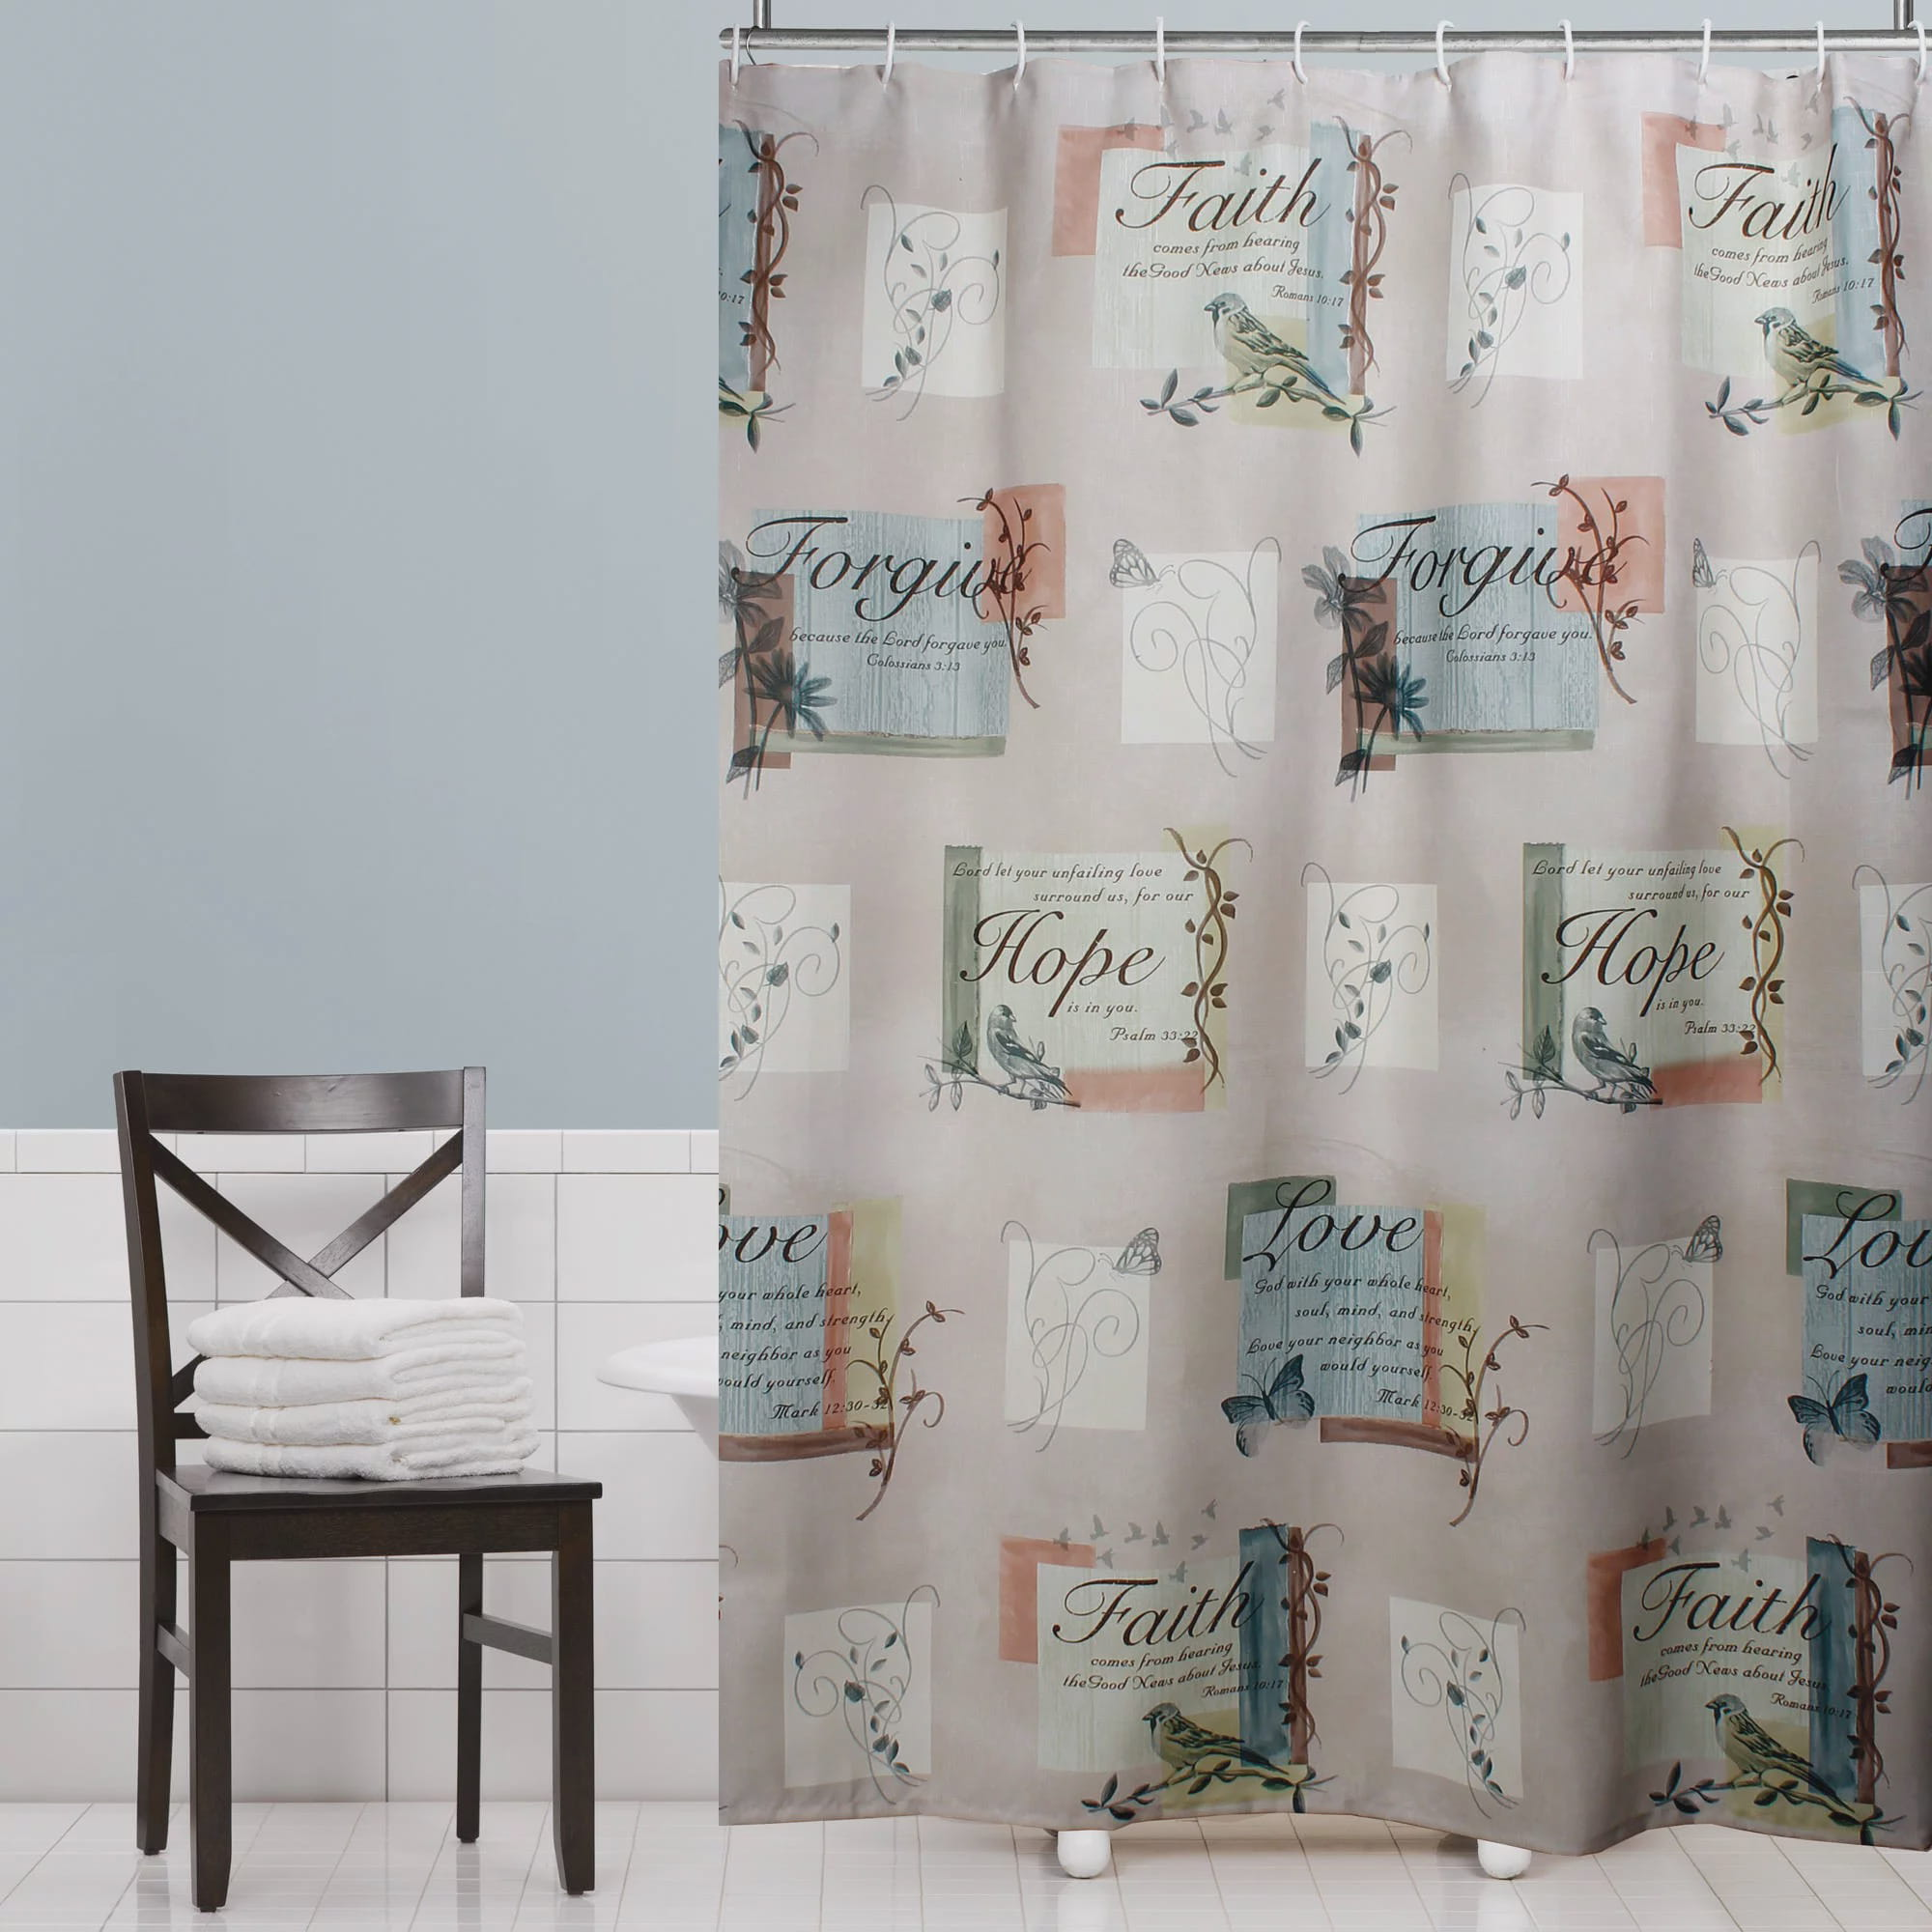 Mainstays Hopeful Fabric Shower Curtain by Saturday Knight LTD